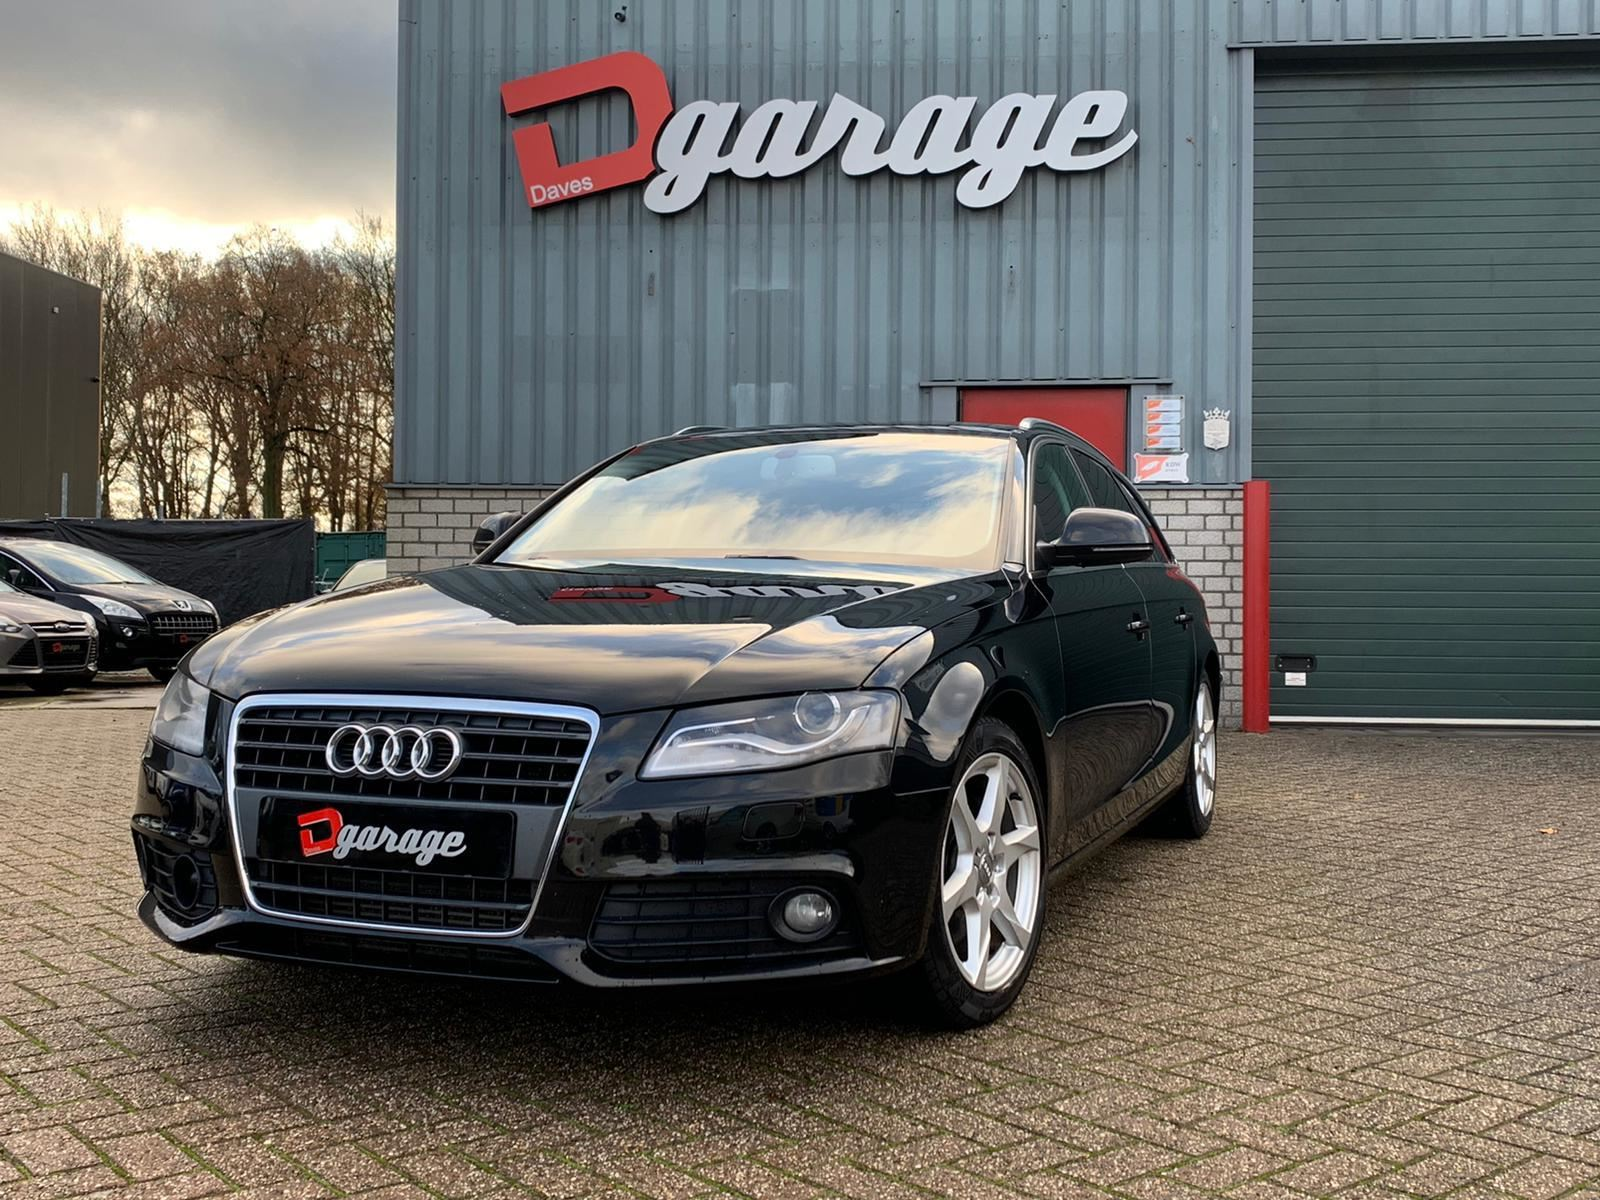 Audi A4 Avant occasion - Dave's Garage